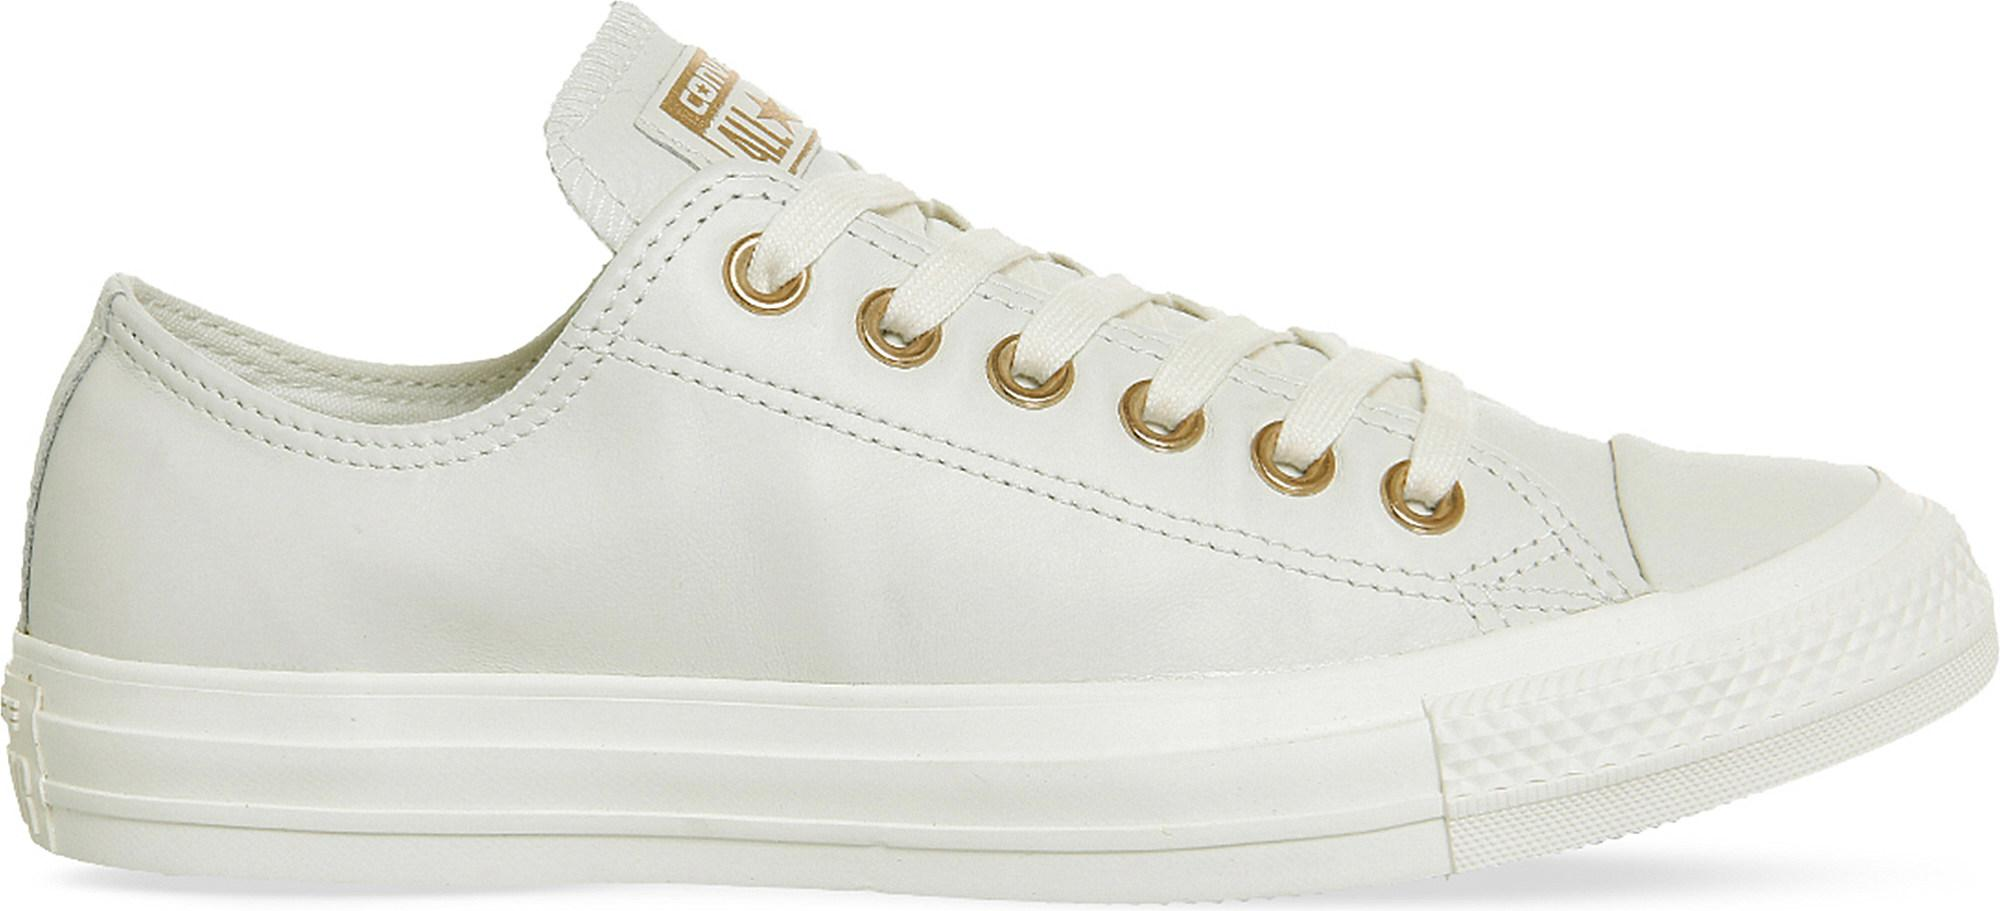 Lyst - Converse All Star Low-top Leather Trainers in White ee5f80813b9